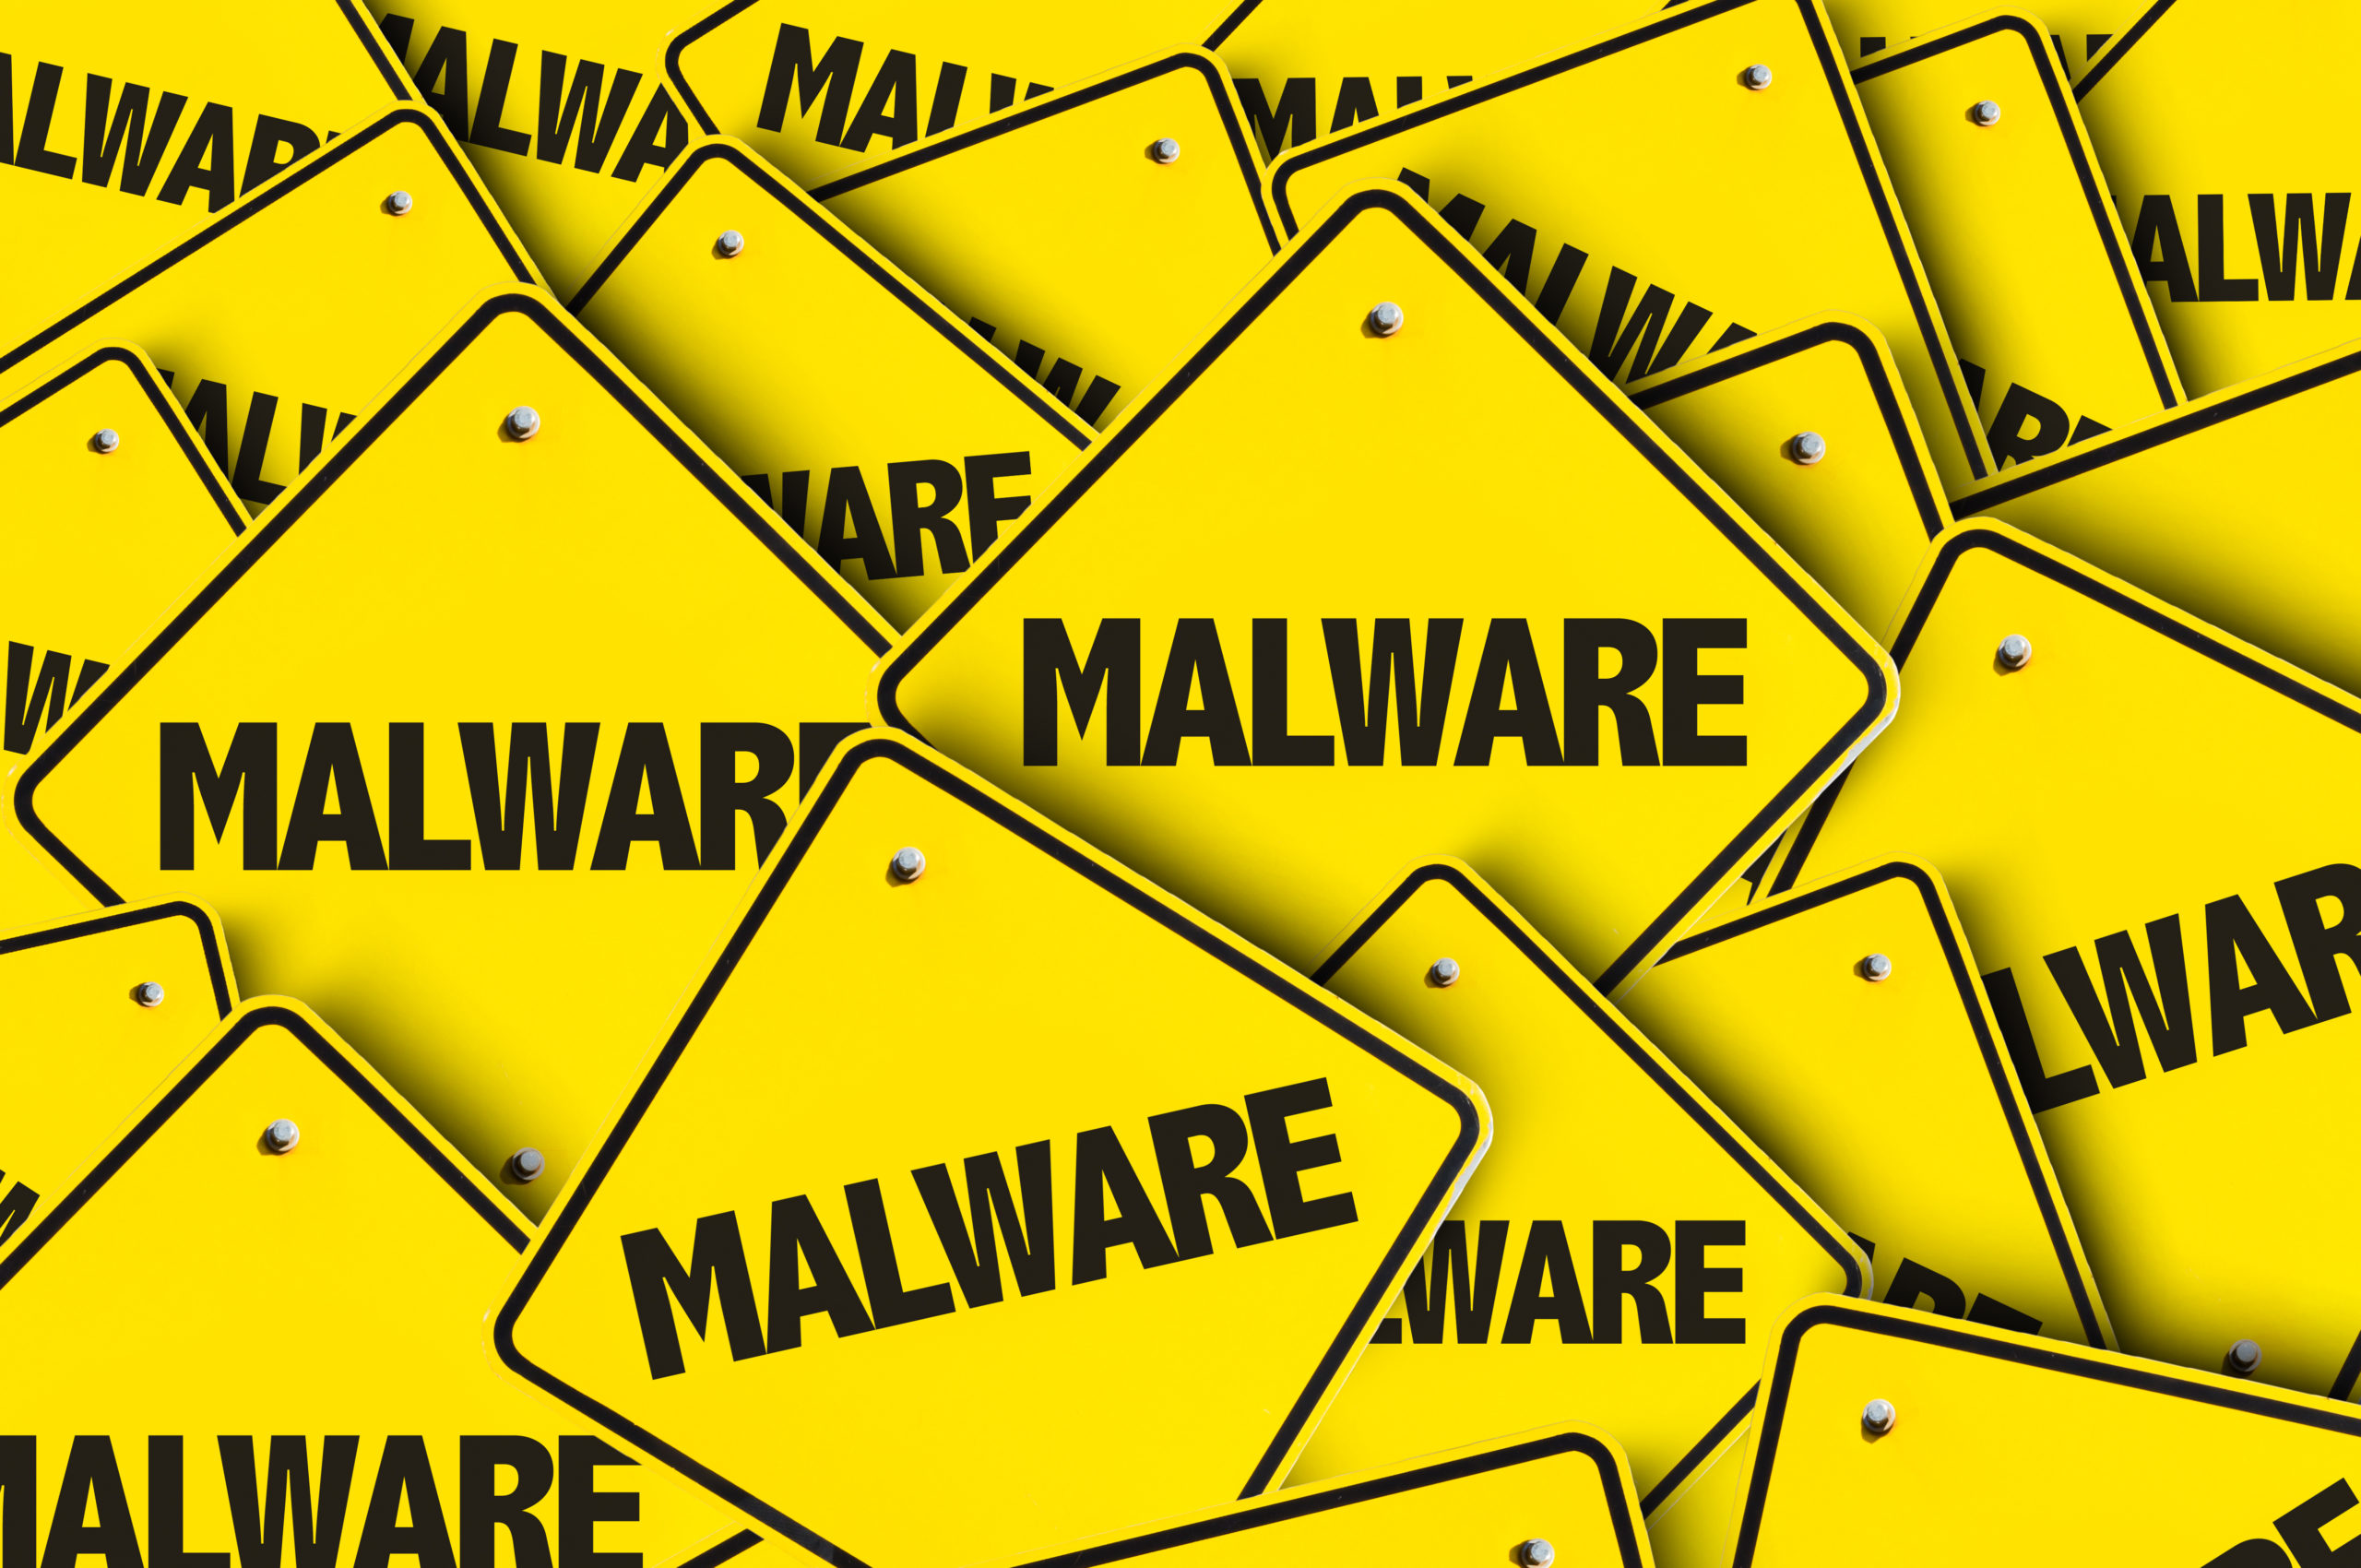 Skip-2.0 Malware Allows Backdoor Access for Hackers